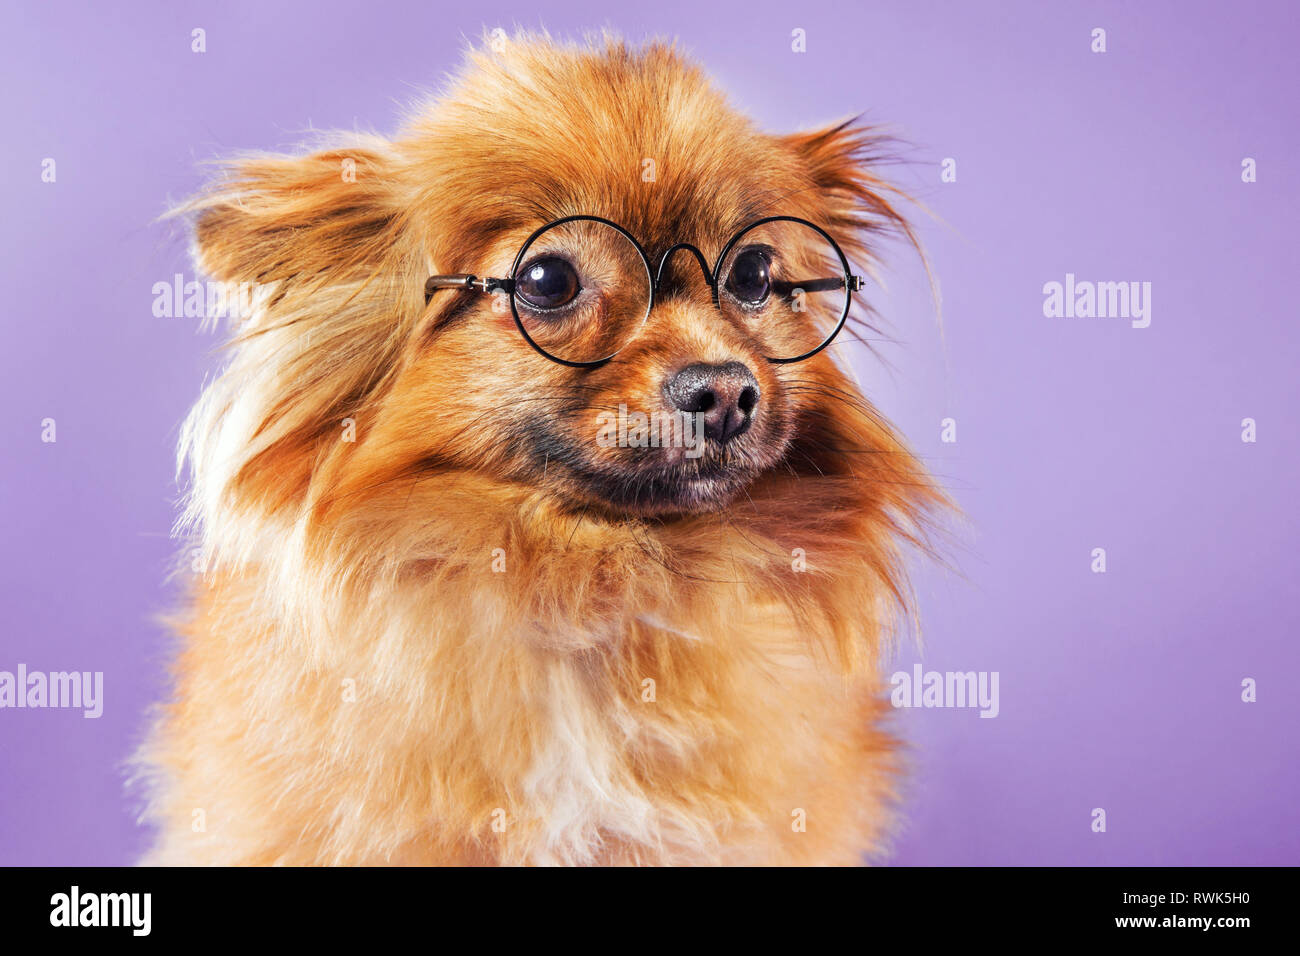 Close-up portrait of a Pomeranian dog wearing eyeglasses and looking off-camera, photographed on a colorful background. - Stock Image